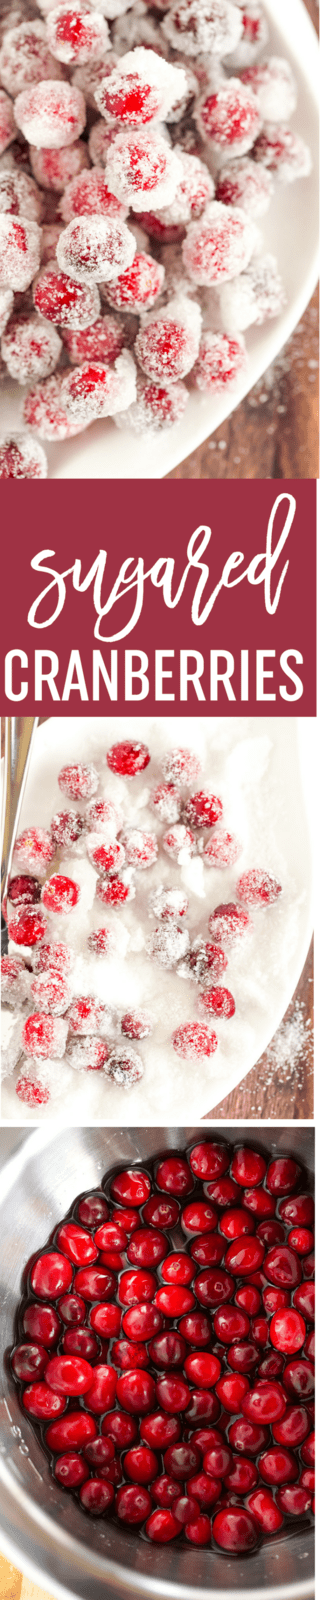 An easy recipe for Sugared Cranberries - a beautiful, sparkly garnish for your holiday desserts and cocktails! | browneyedbaker.com